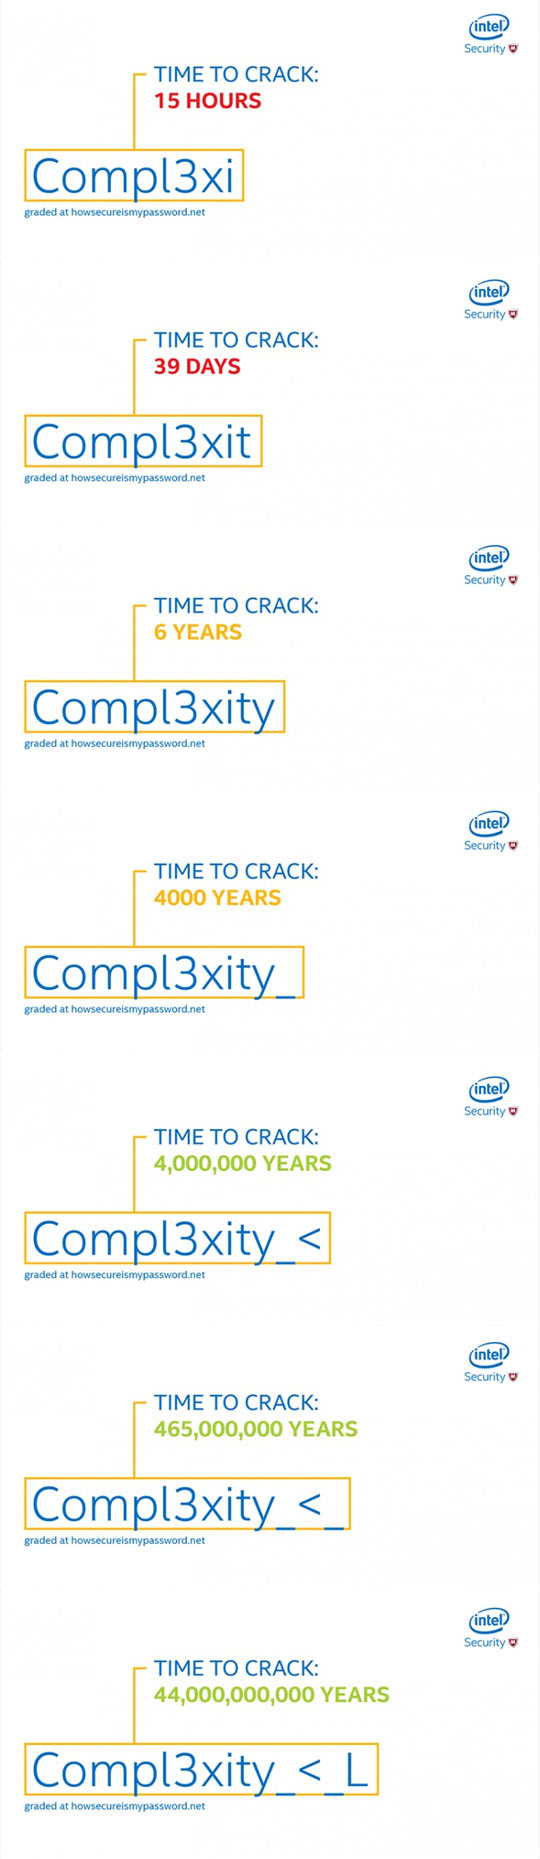 funny-crack-password-complexity-time-Intel